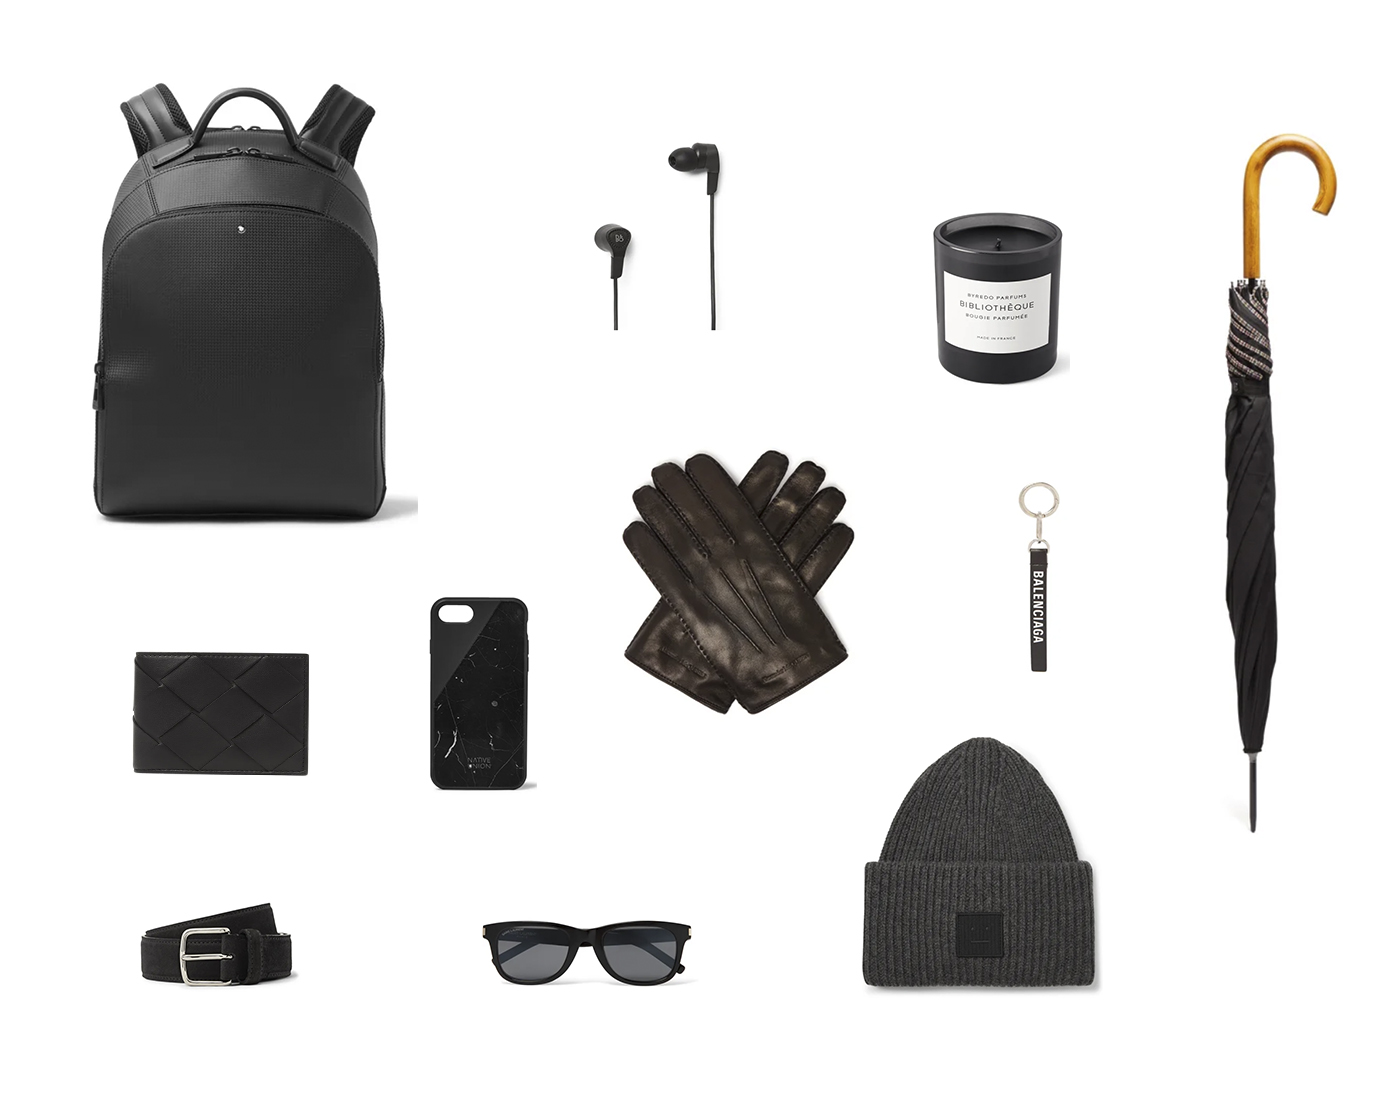 Trini | 2019 GIFT GUIDE FOR HIM